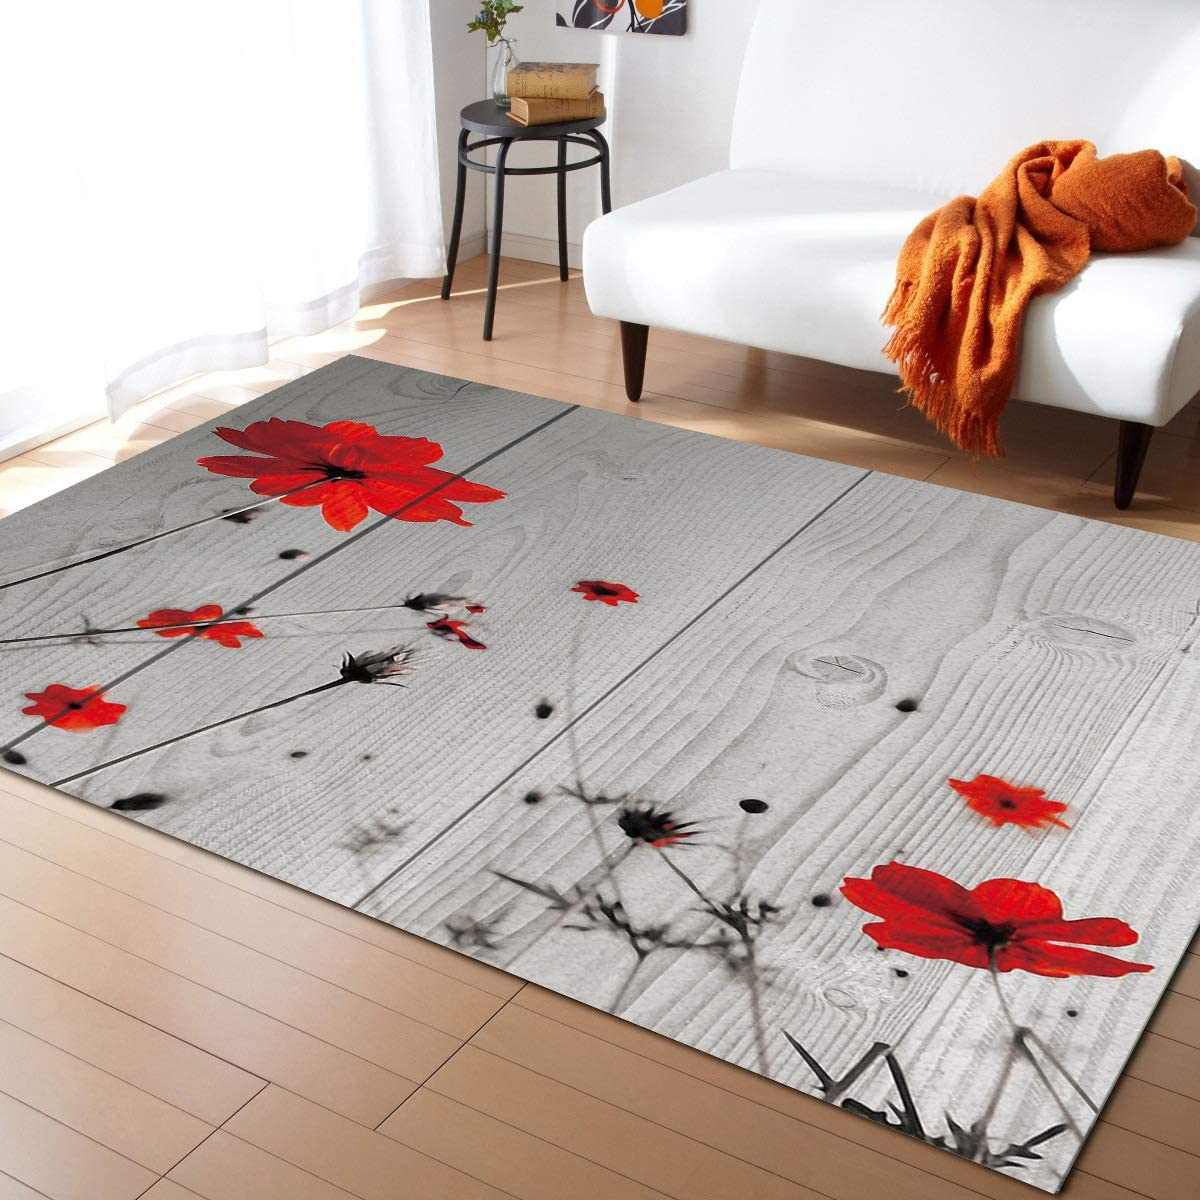 Credence Indianapolis Mall OUR DREAMS Red Poppies Floral Rectangle - Area Large Rugs Shape